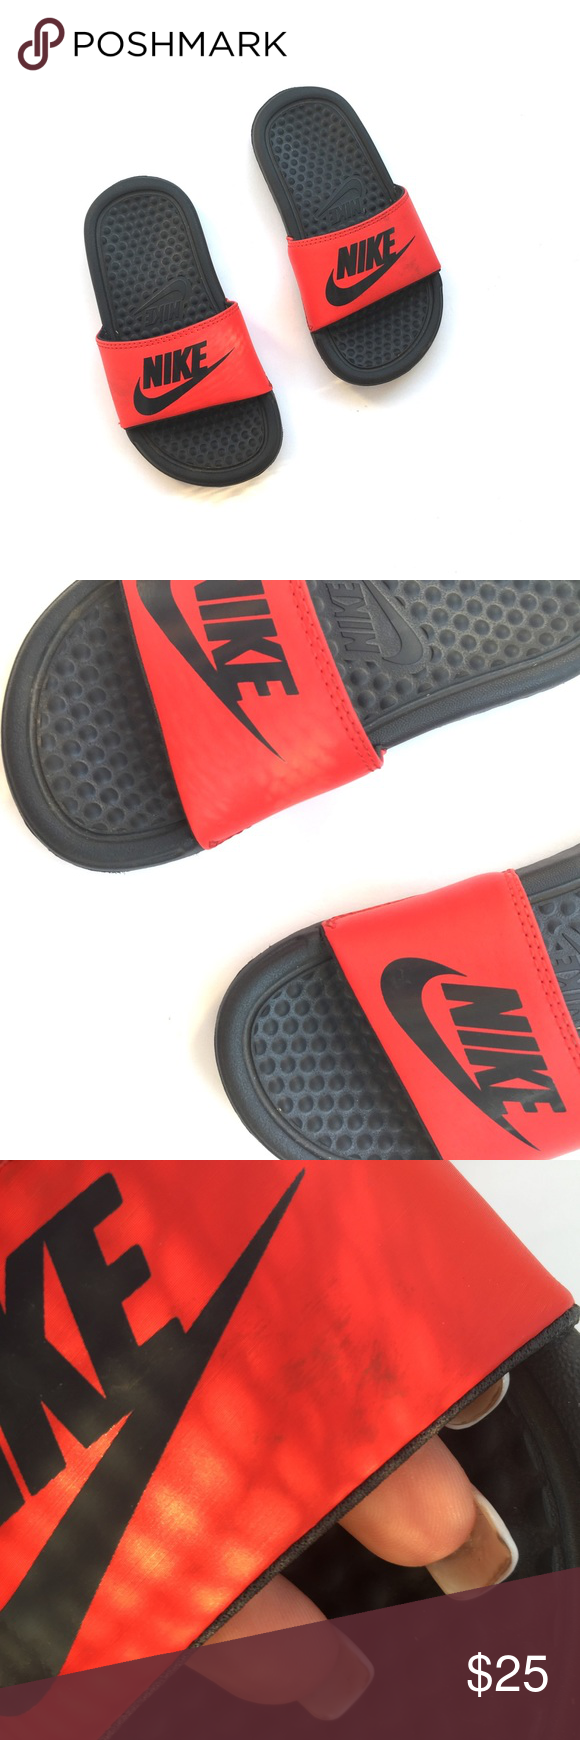 save off d7857 92b87 Red and black nike slides Childs size. Gently used. One scuff on top. •no  trades•no offsite transactions•no low balls•offers considered through the  offer ...